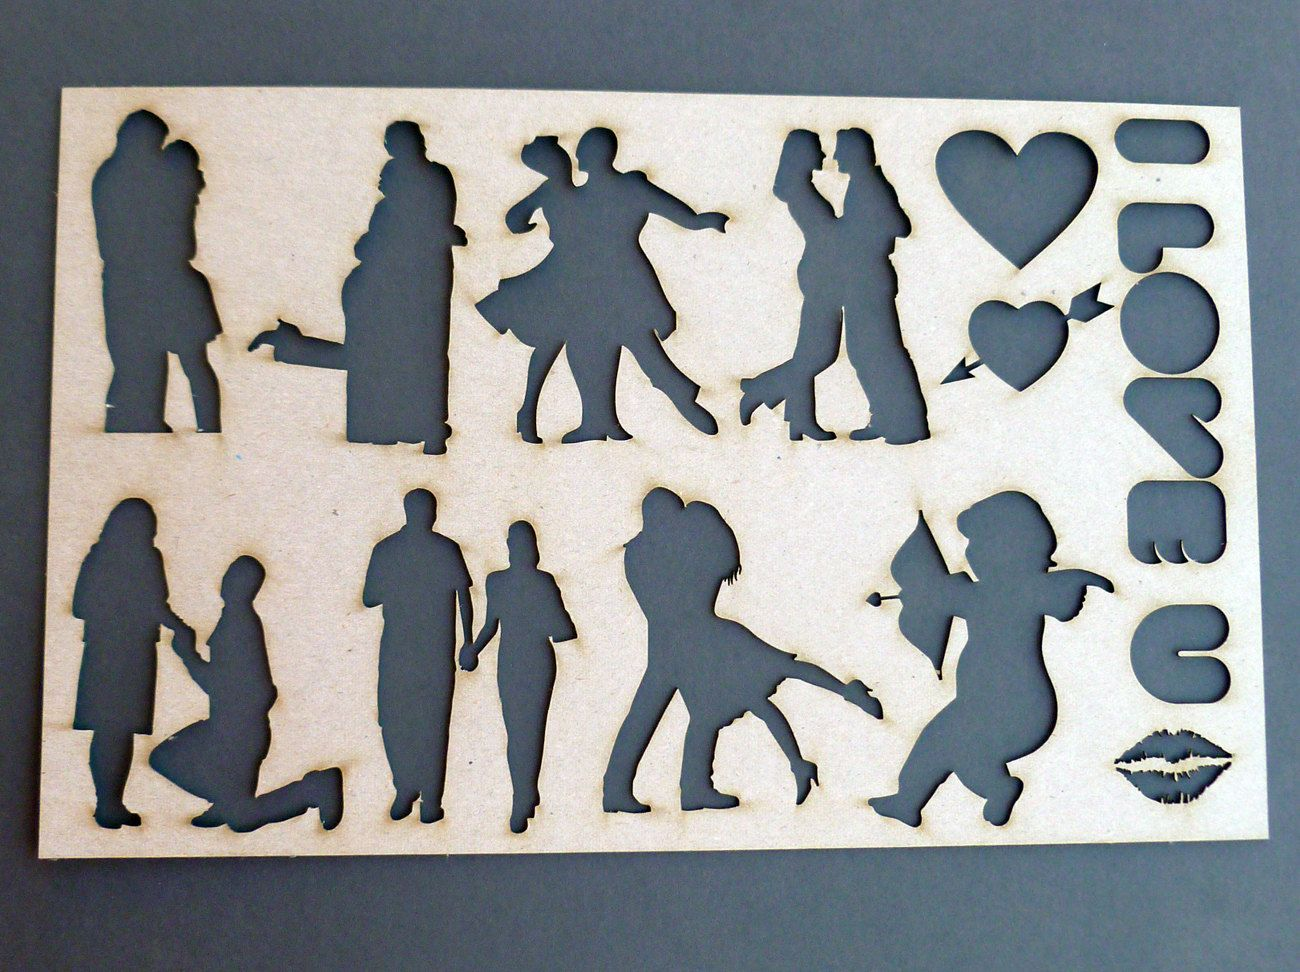 love couples in love stencil template trace wedding paper guide wedding engagment proposal cupid arrow heart lips hugging kissing dancing 1000 via etsy